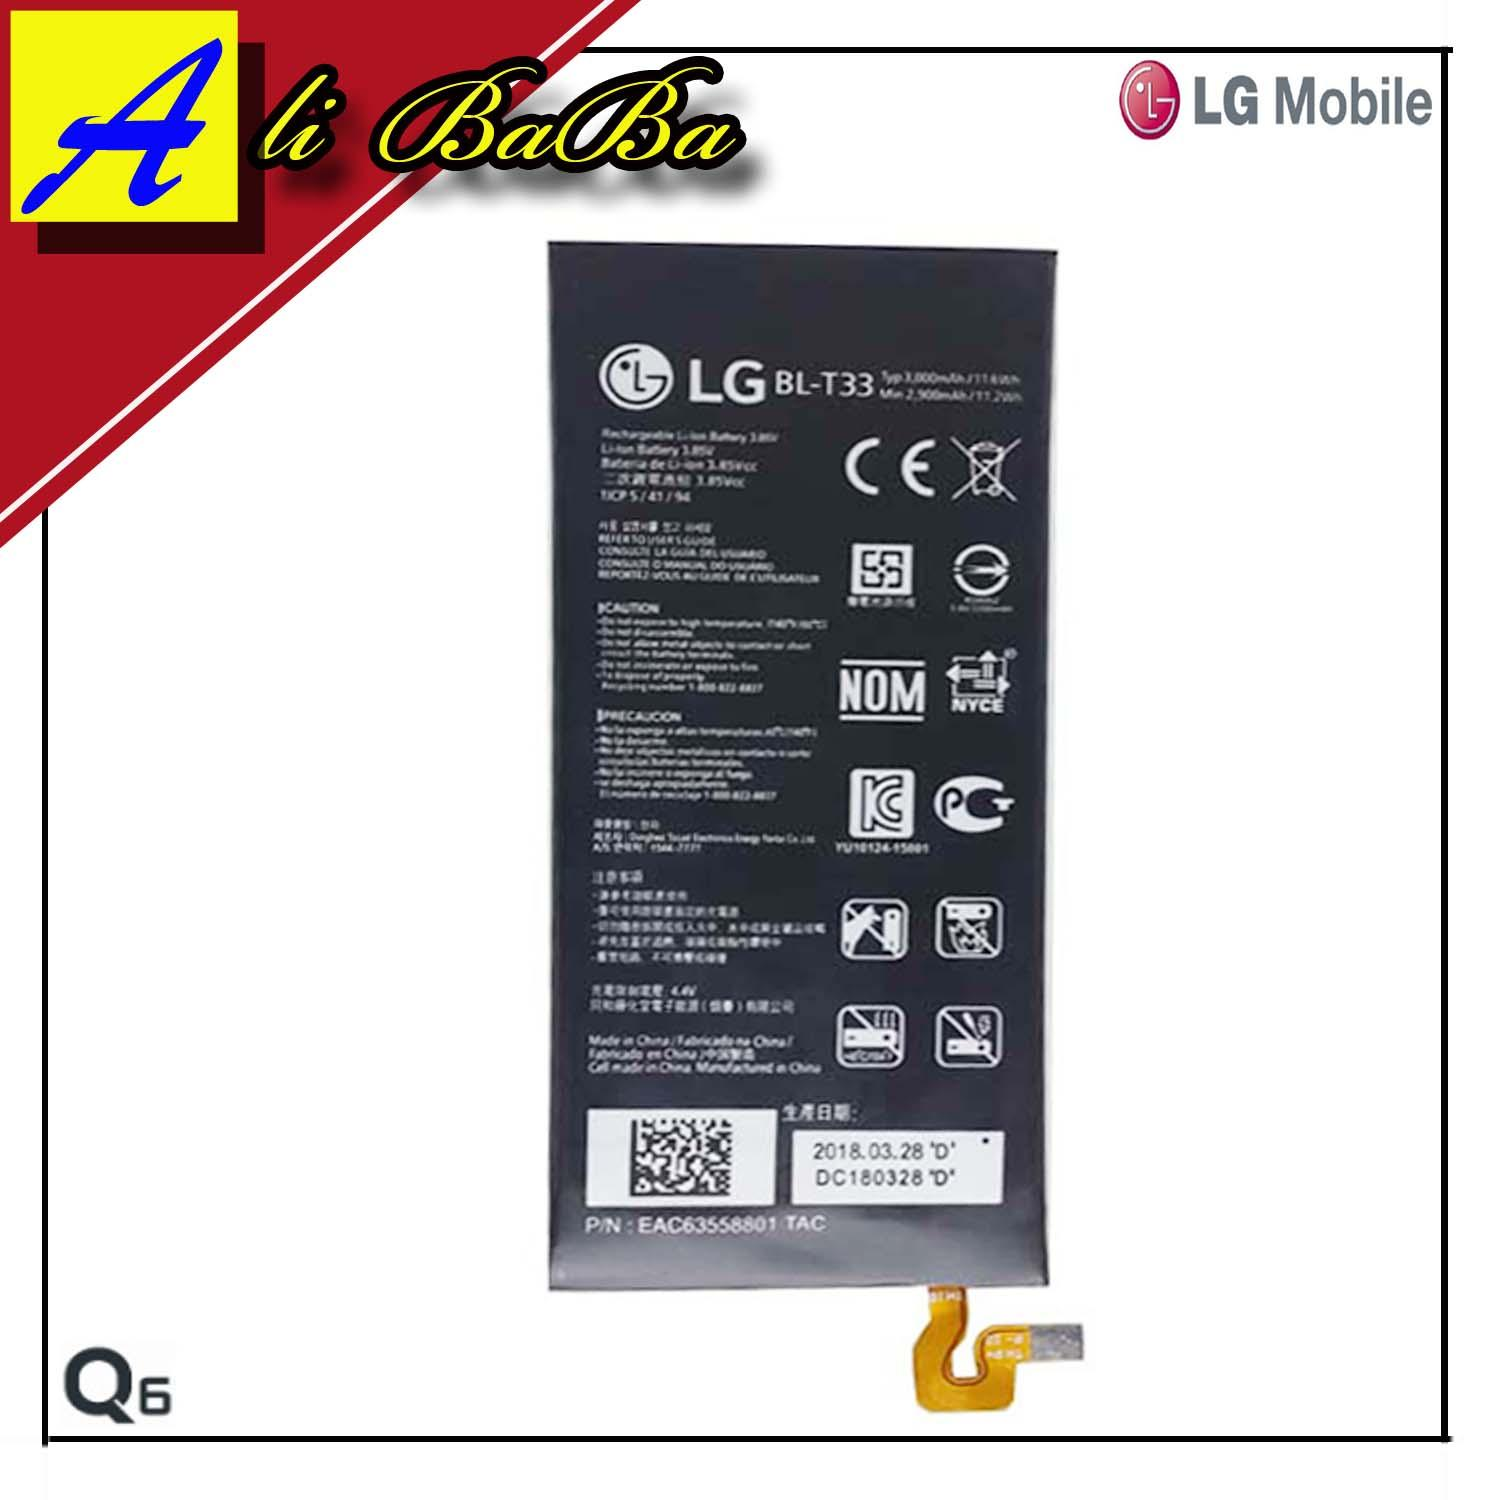 Buy Sell Cheapest Hp Lg X Best Quality Product Deals Indonesian Smartphone Xscreen K500 Resmi Indonesia Baterai Handphone Q6 Bl T33 Batre